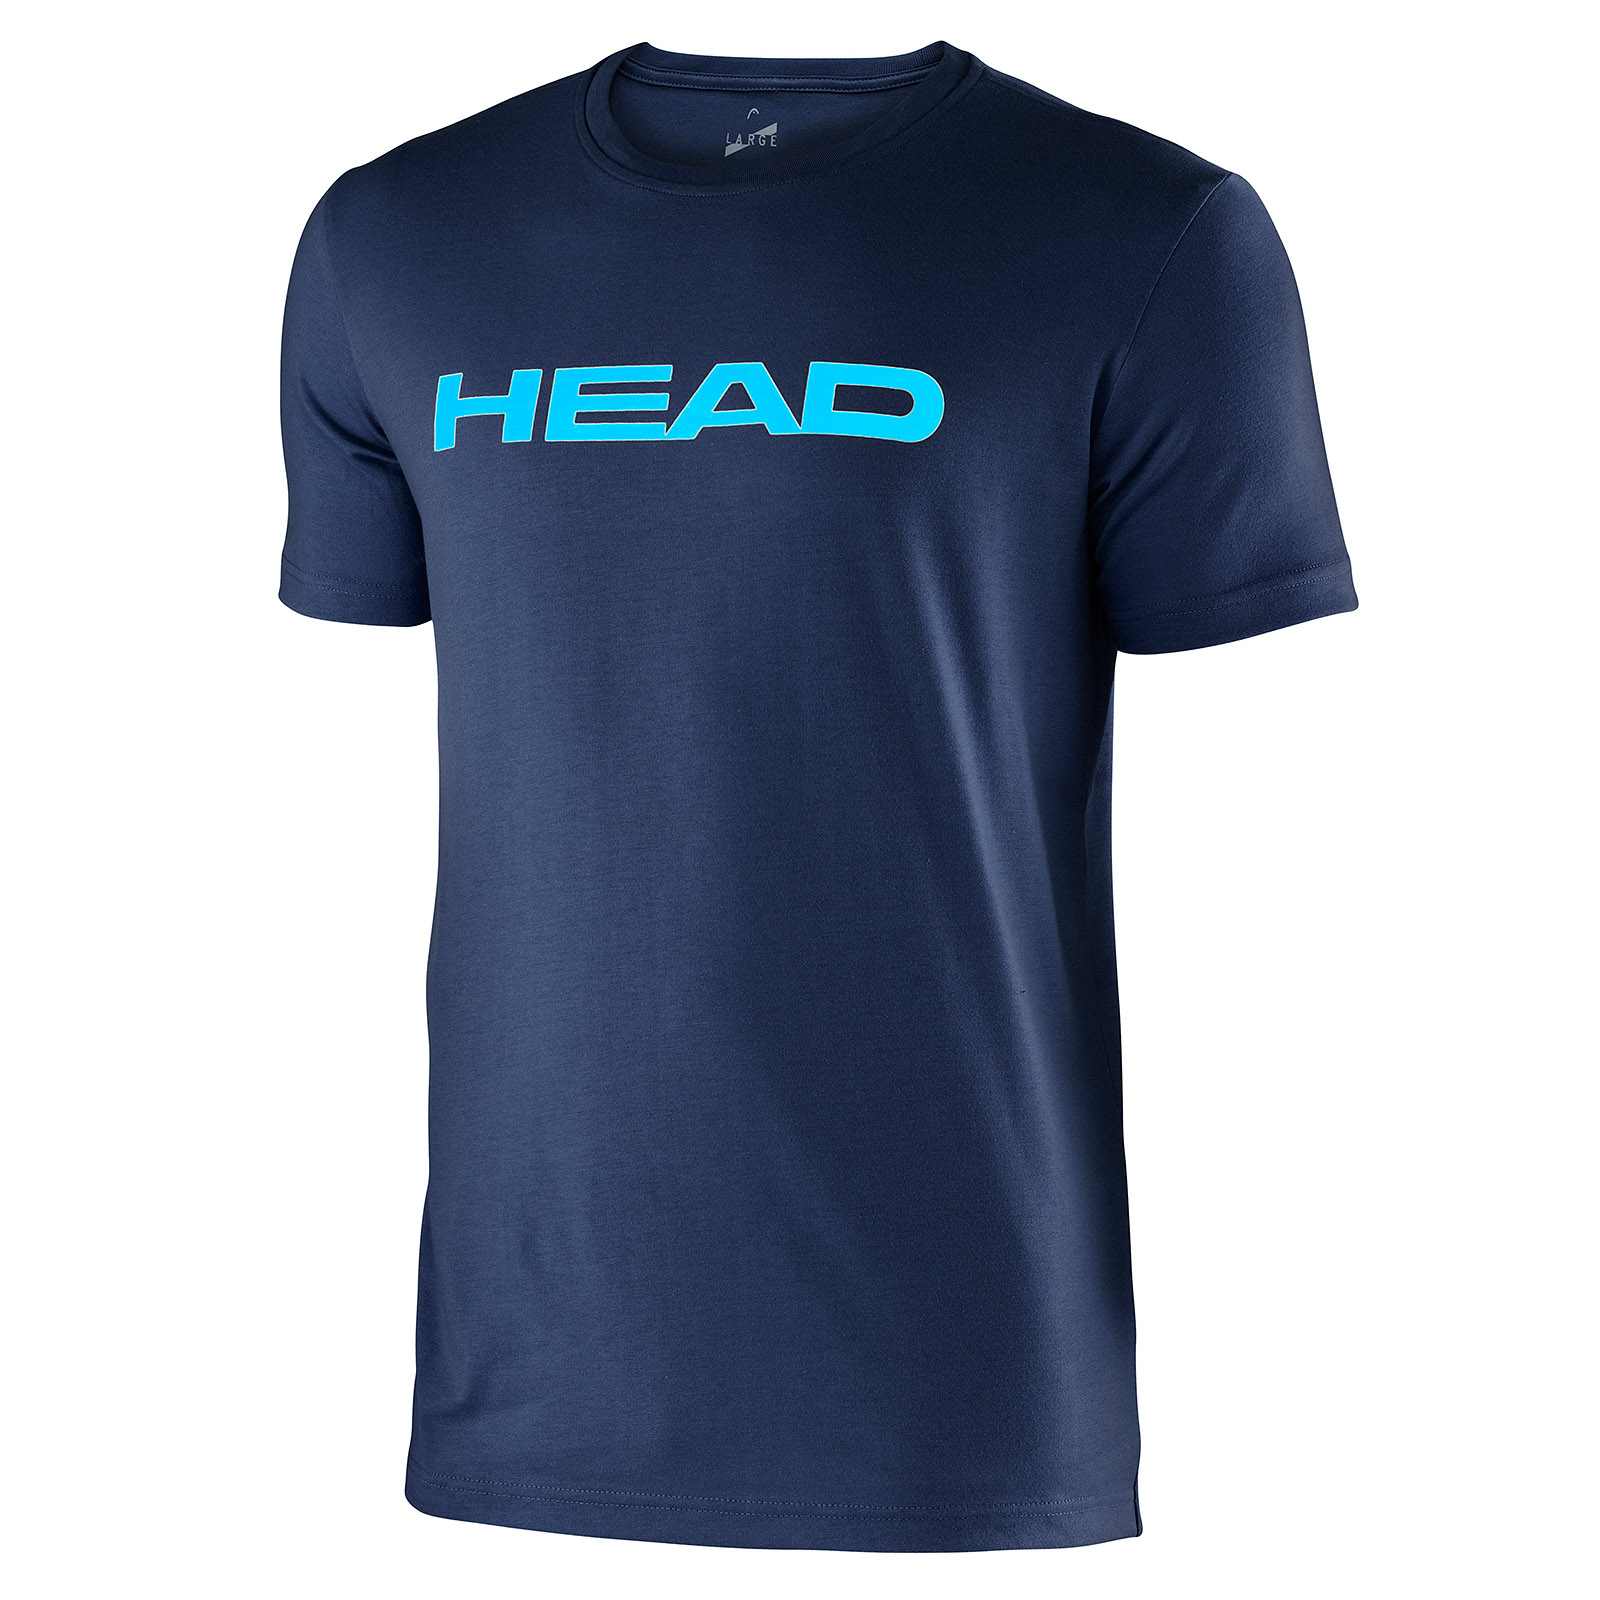 Head T-shirt - Ivan JR Blue 164